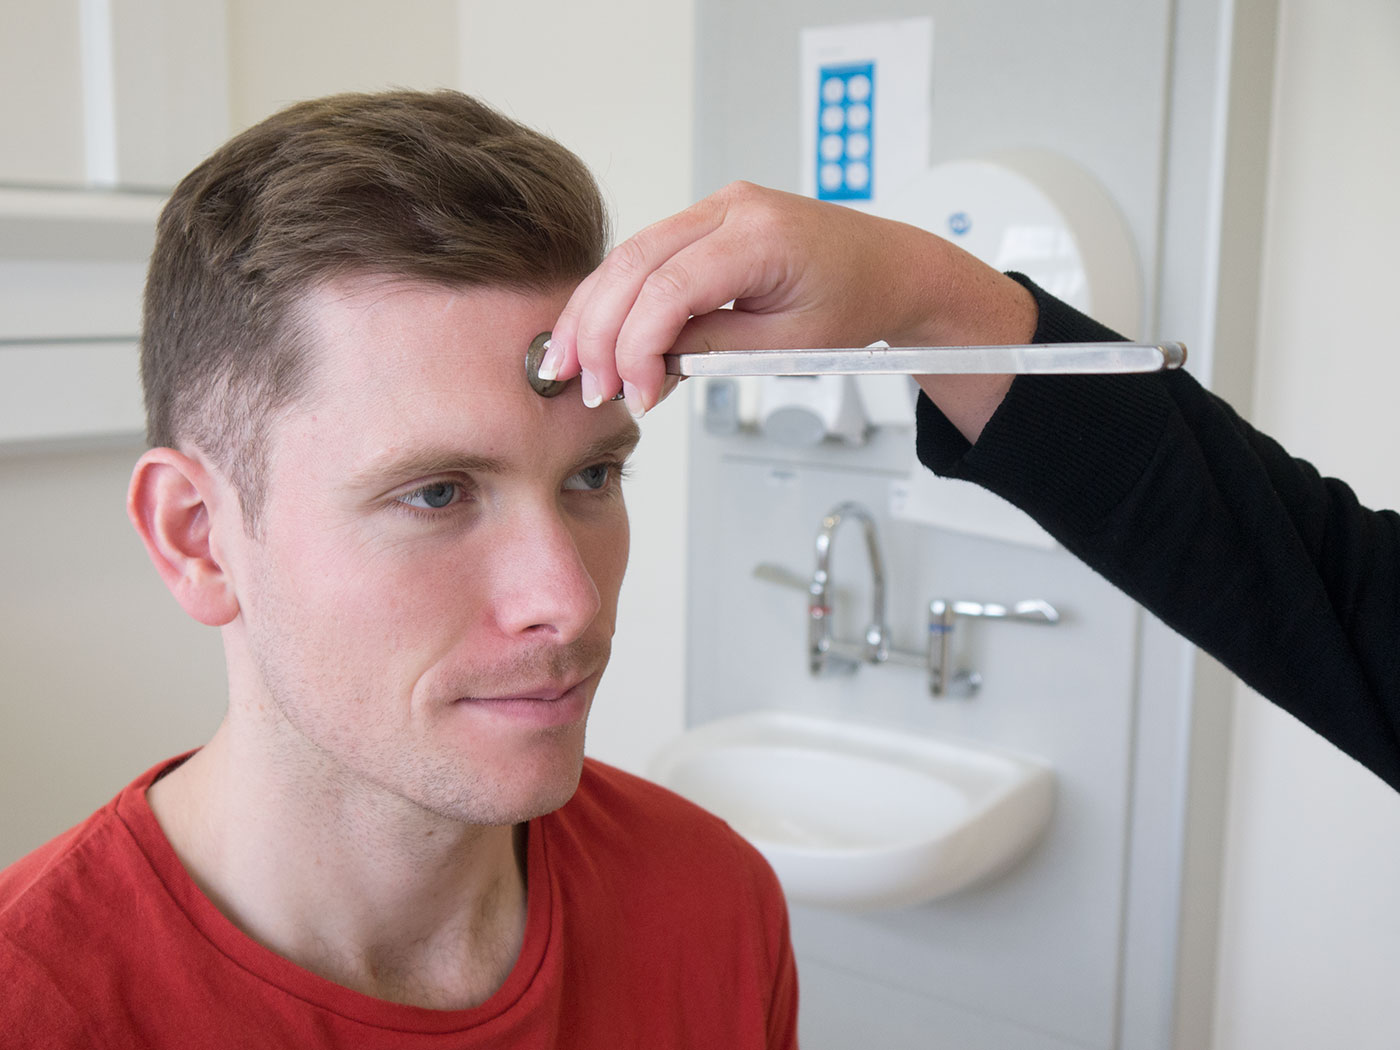 Webers test - place the tuning fork base down in the centre of the forehead